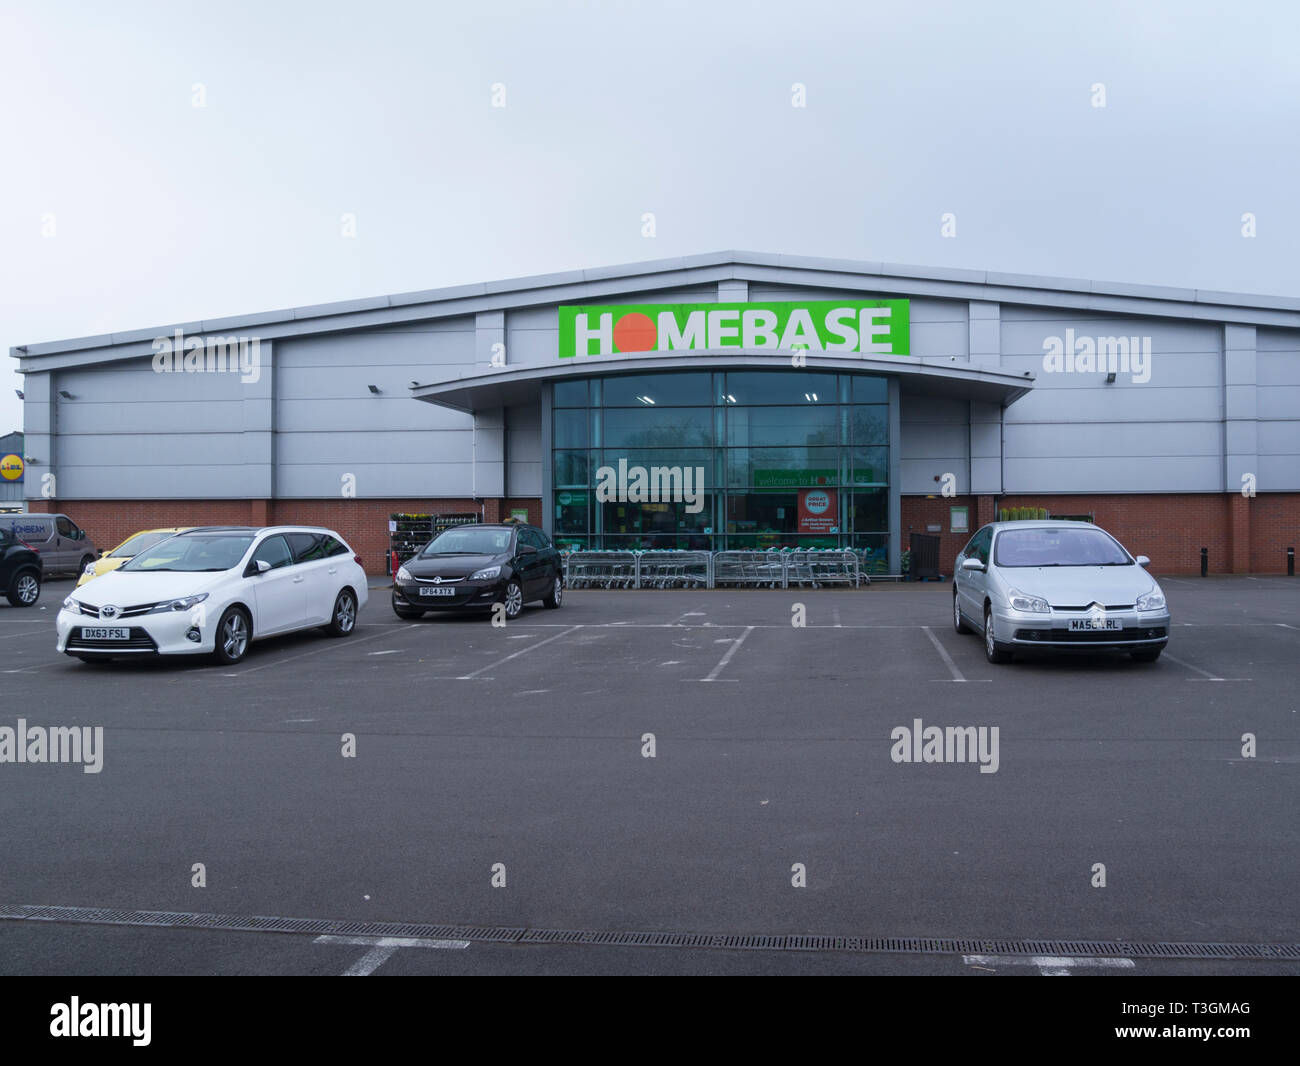 Homebase DIY store in Market Drayton Shropshire earmarked for closure later this year making staff redundant Stock Photo